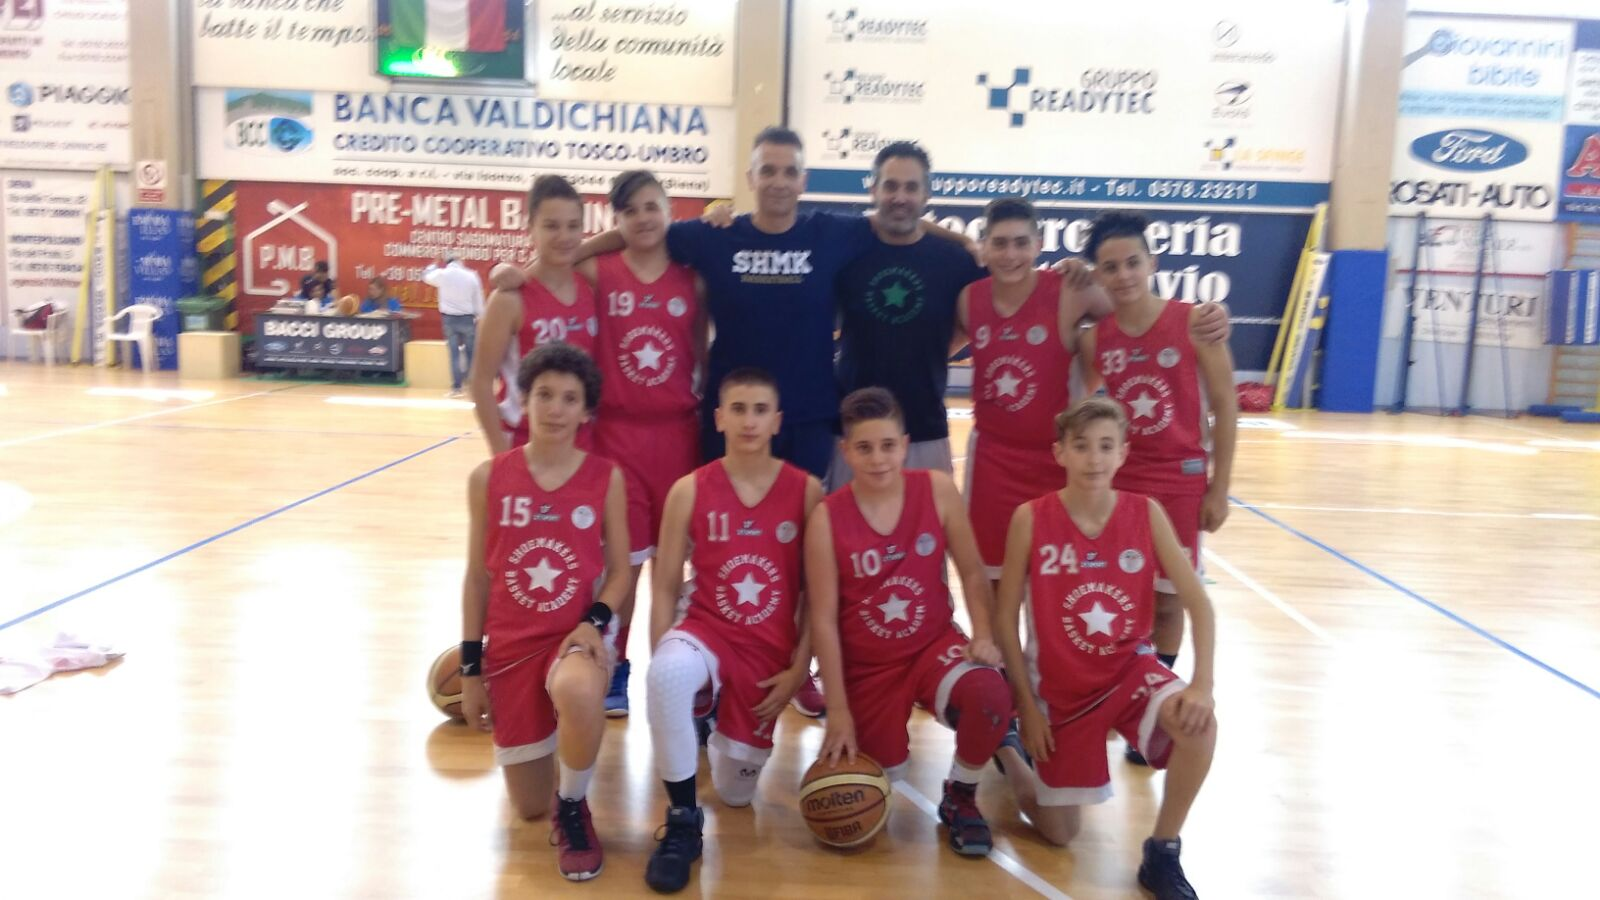 Quarto posto per gli Under 14 alle Final Four di Coppa Toscana